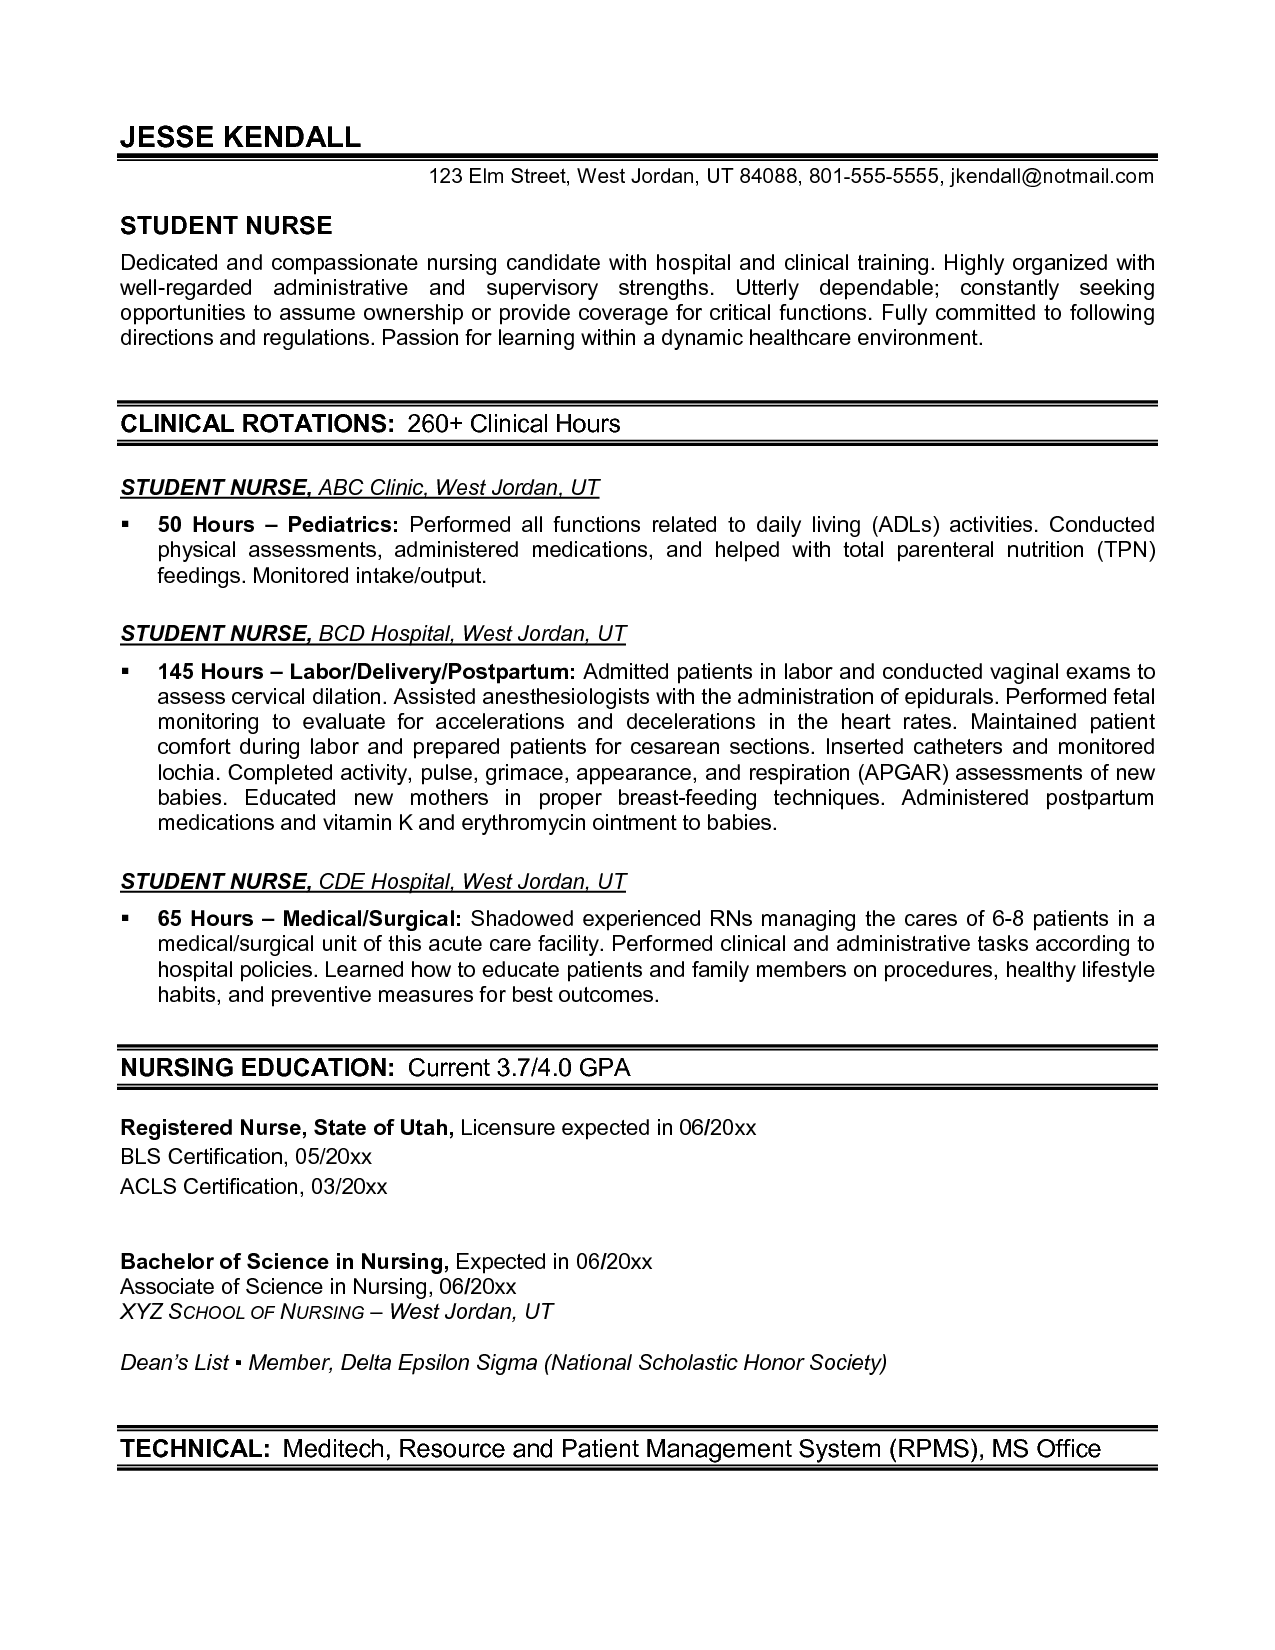 resume template nursing - Examples Of Resumes For Nurses